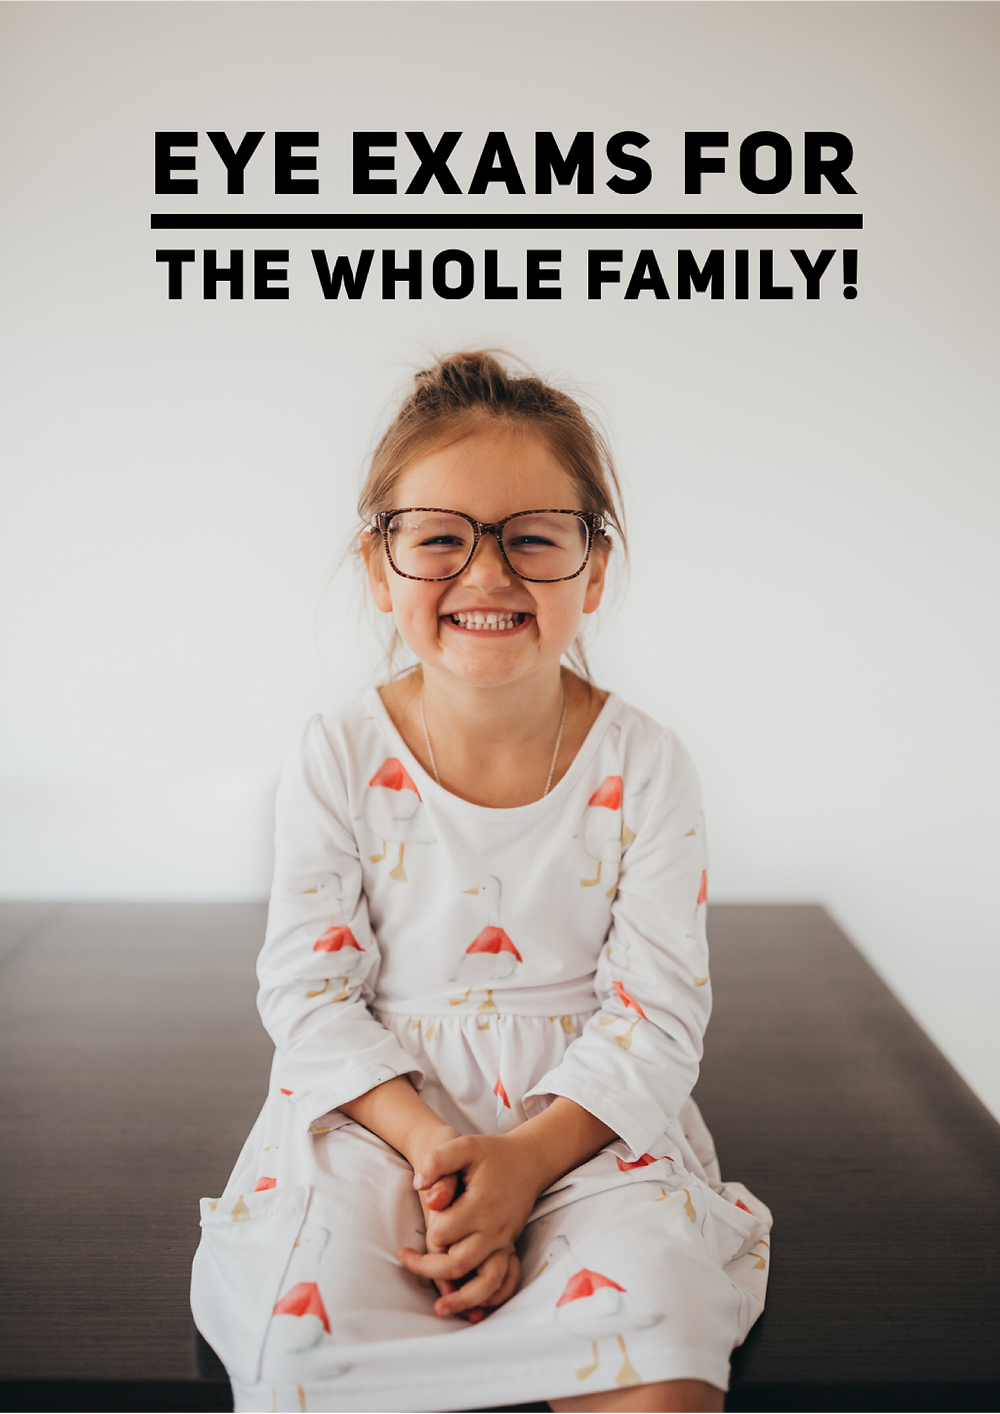 Little girl wearing big glasses smiling